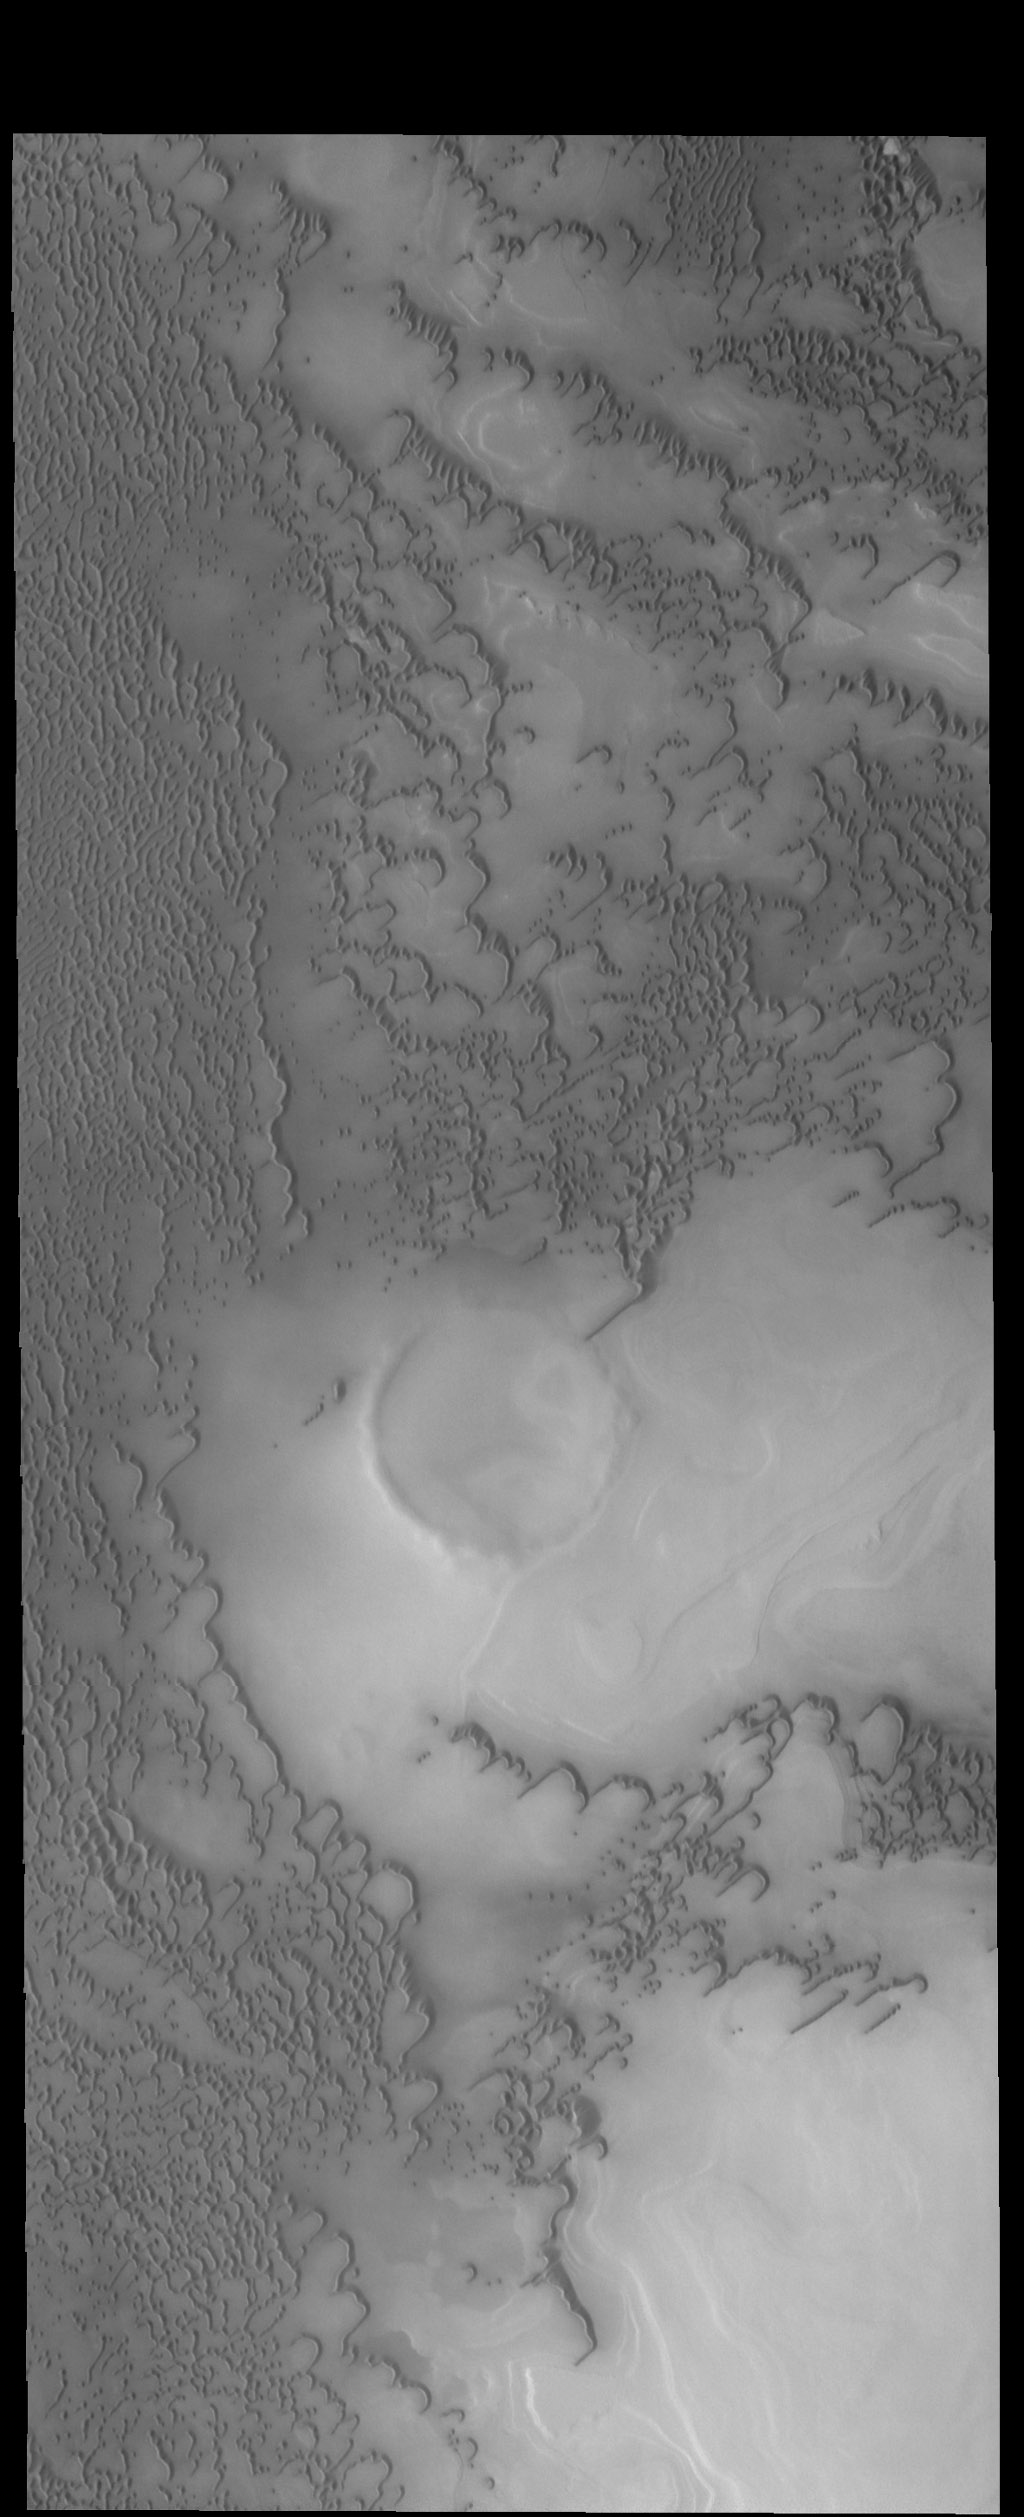 This image from NASA's 2001 Mars Odyssey spacecraft shows more north polar dunes. If you compare multiple dune images, you will see that the dunes can take different forms and cover different amounts of the plains.